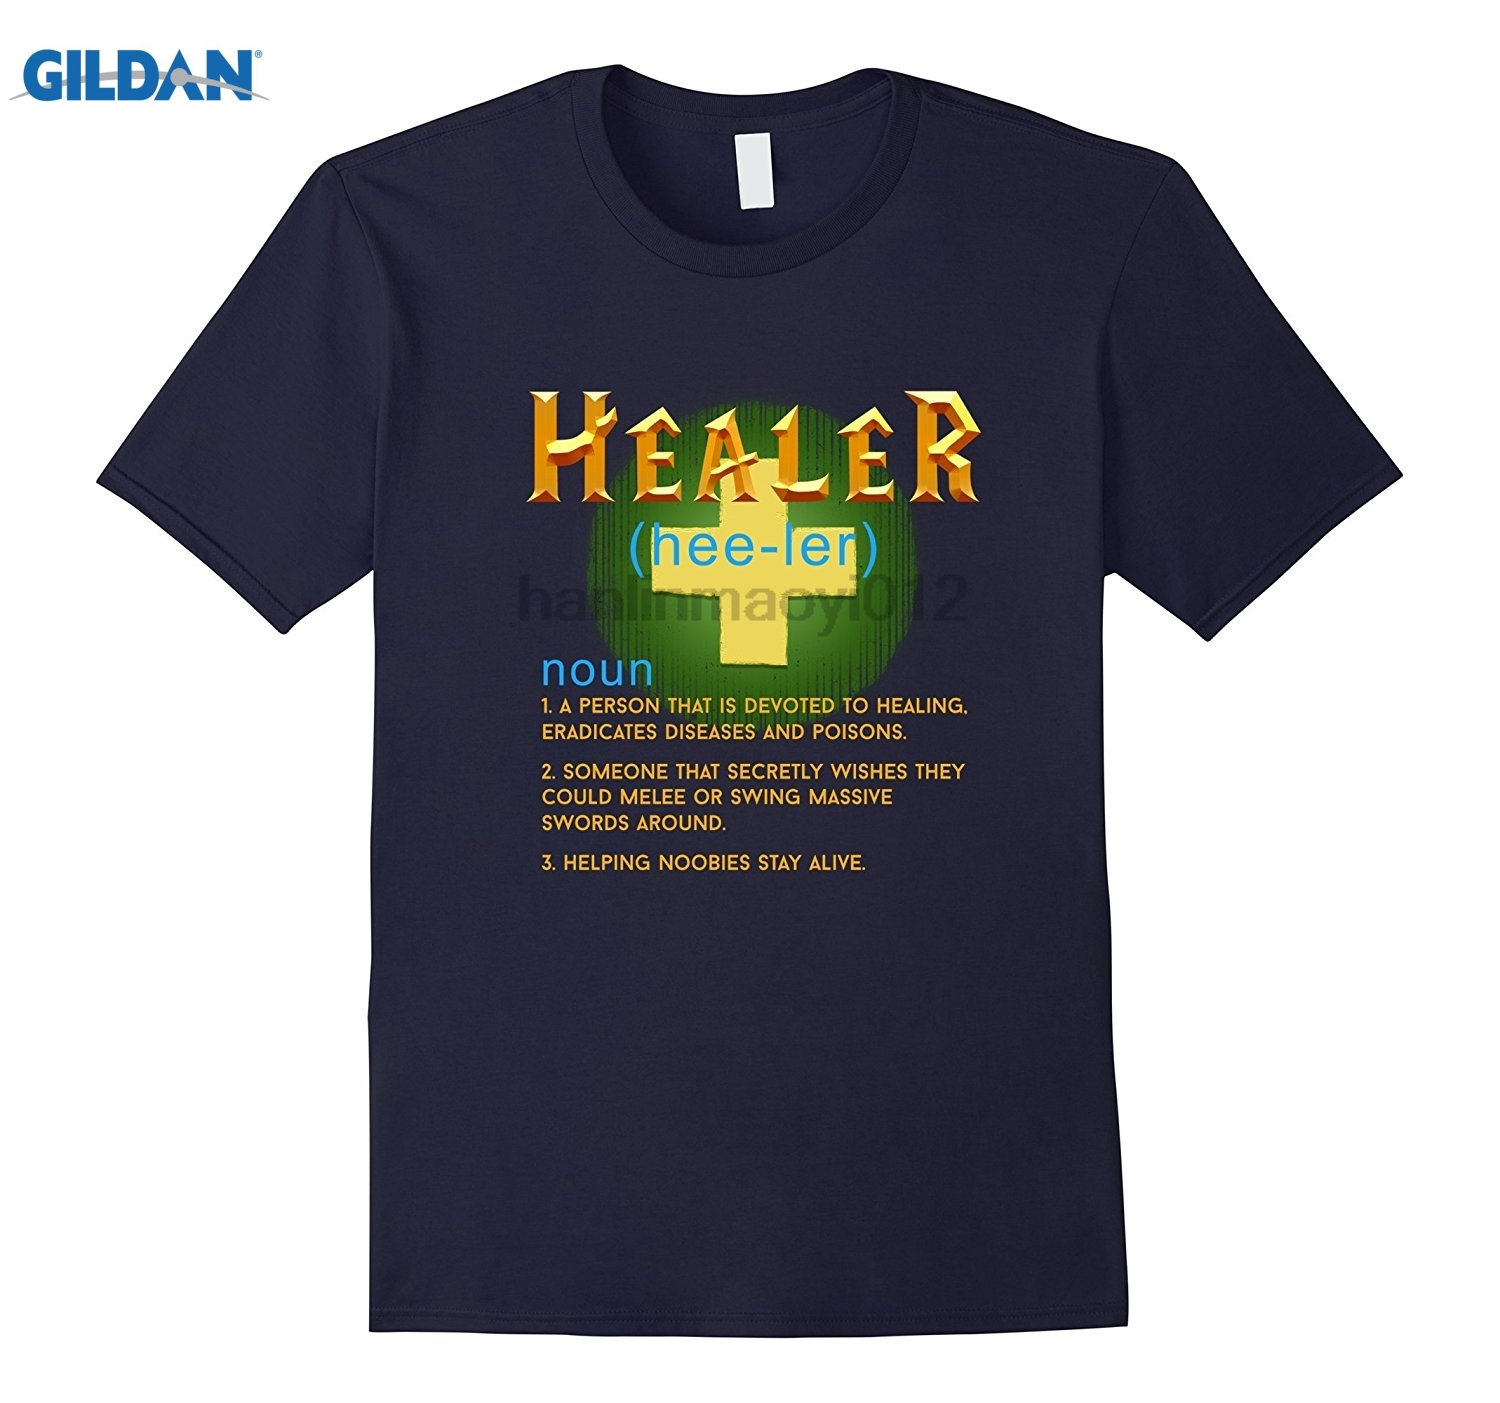 GILDAN FUNNY HEALER T-SHIRT Gamer Geek Nerd Computer Video game quality effect T-shirt Hot Women's T-shirt